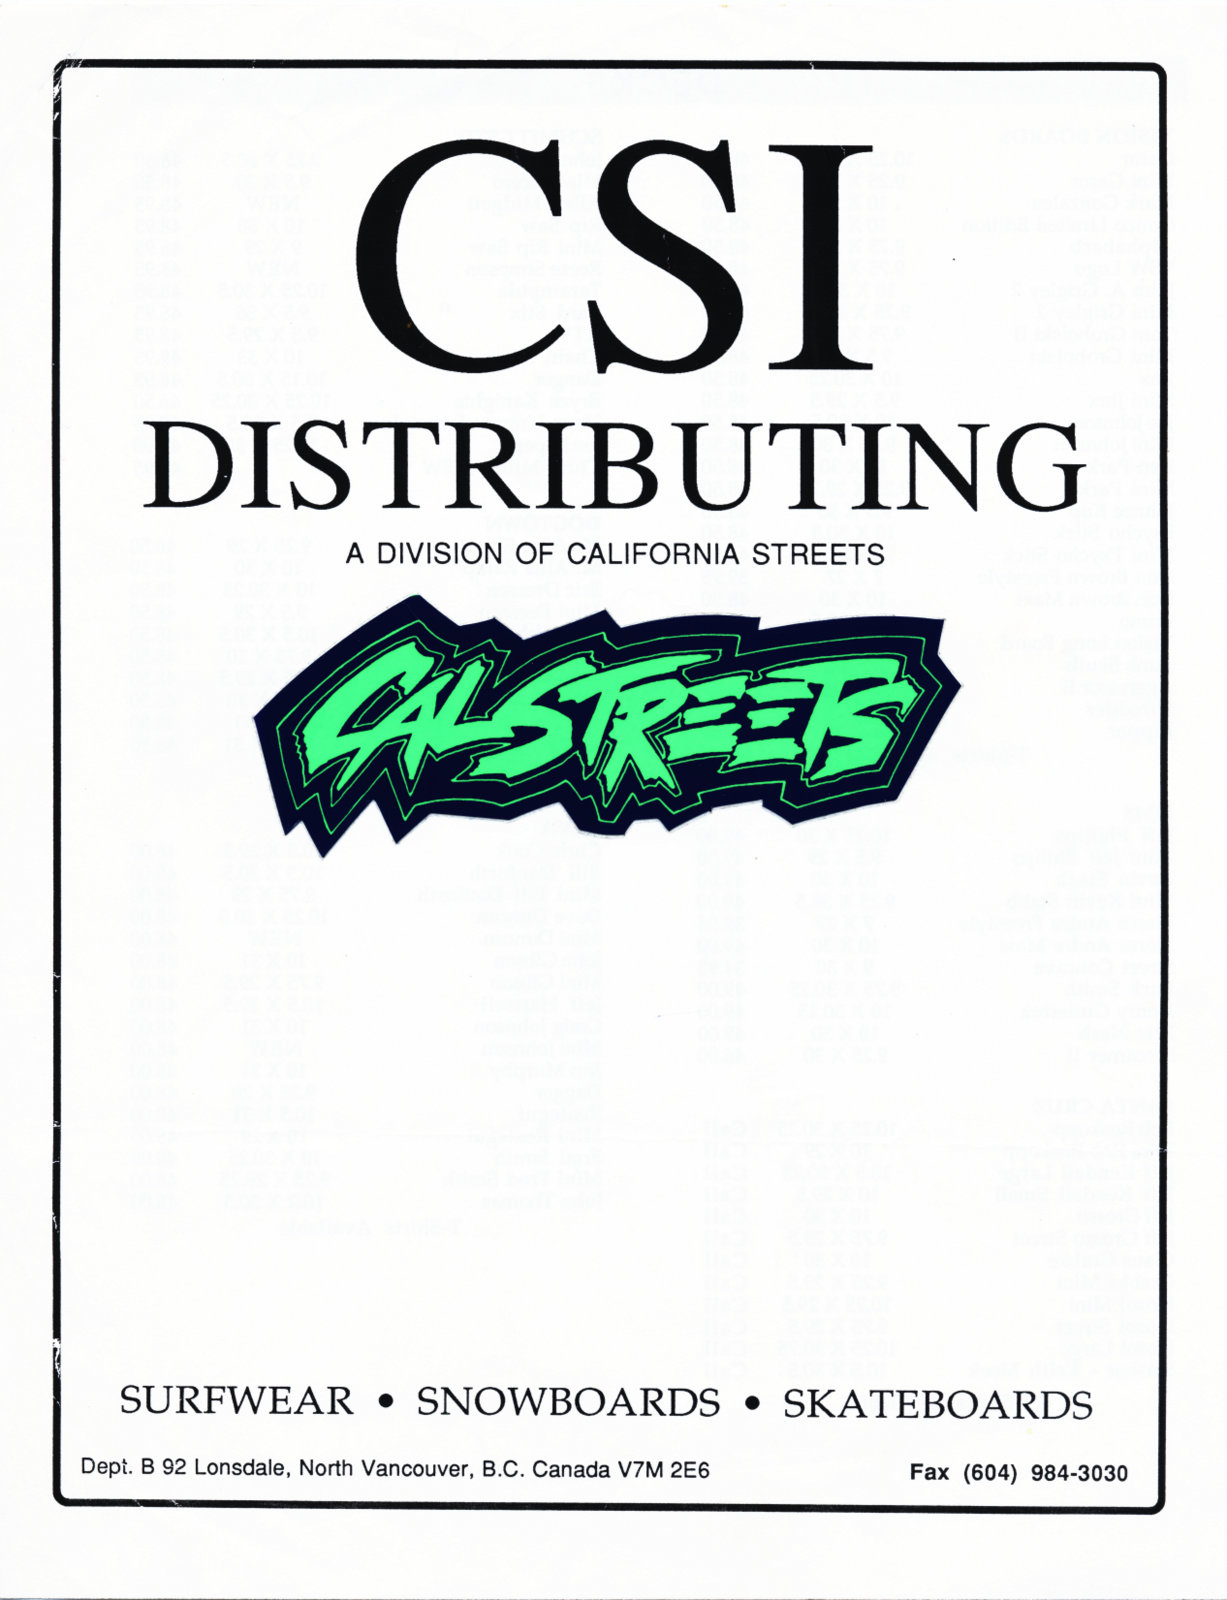 CSI - Cal Streets Industries was a major distributor for Sims, Burton, T&C, Blockhead, Alva, BrandX, Tracker, Indy, Vision, Dogtown, Zorlac and Powell-Peralta.